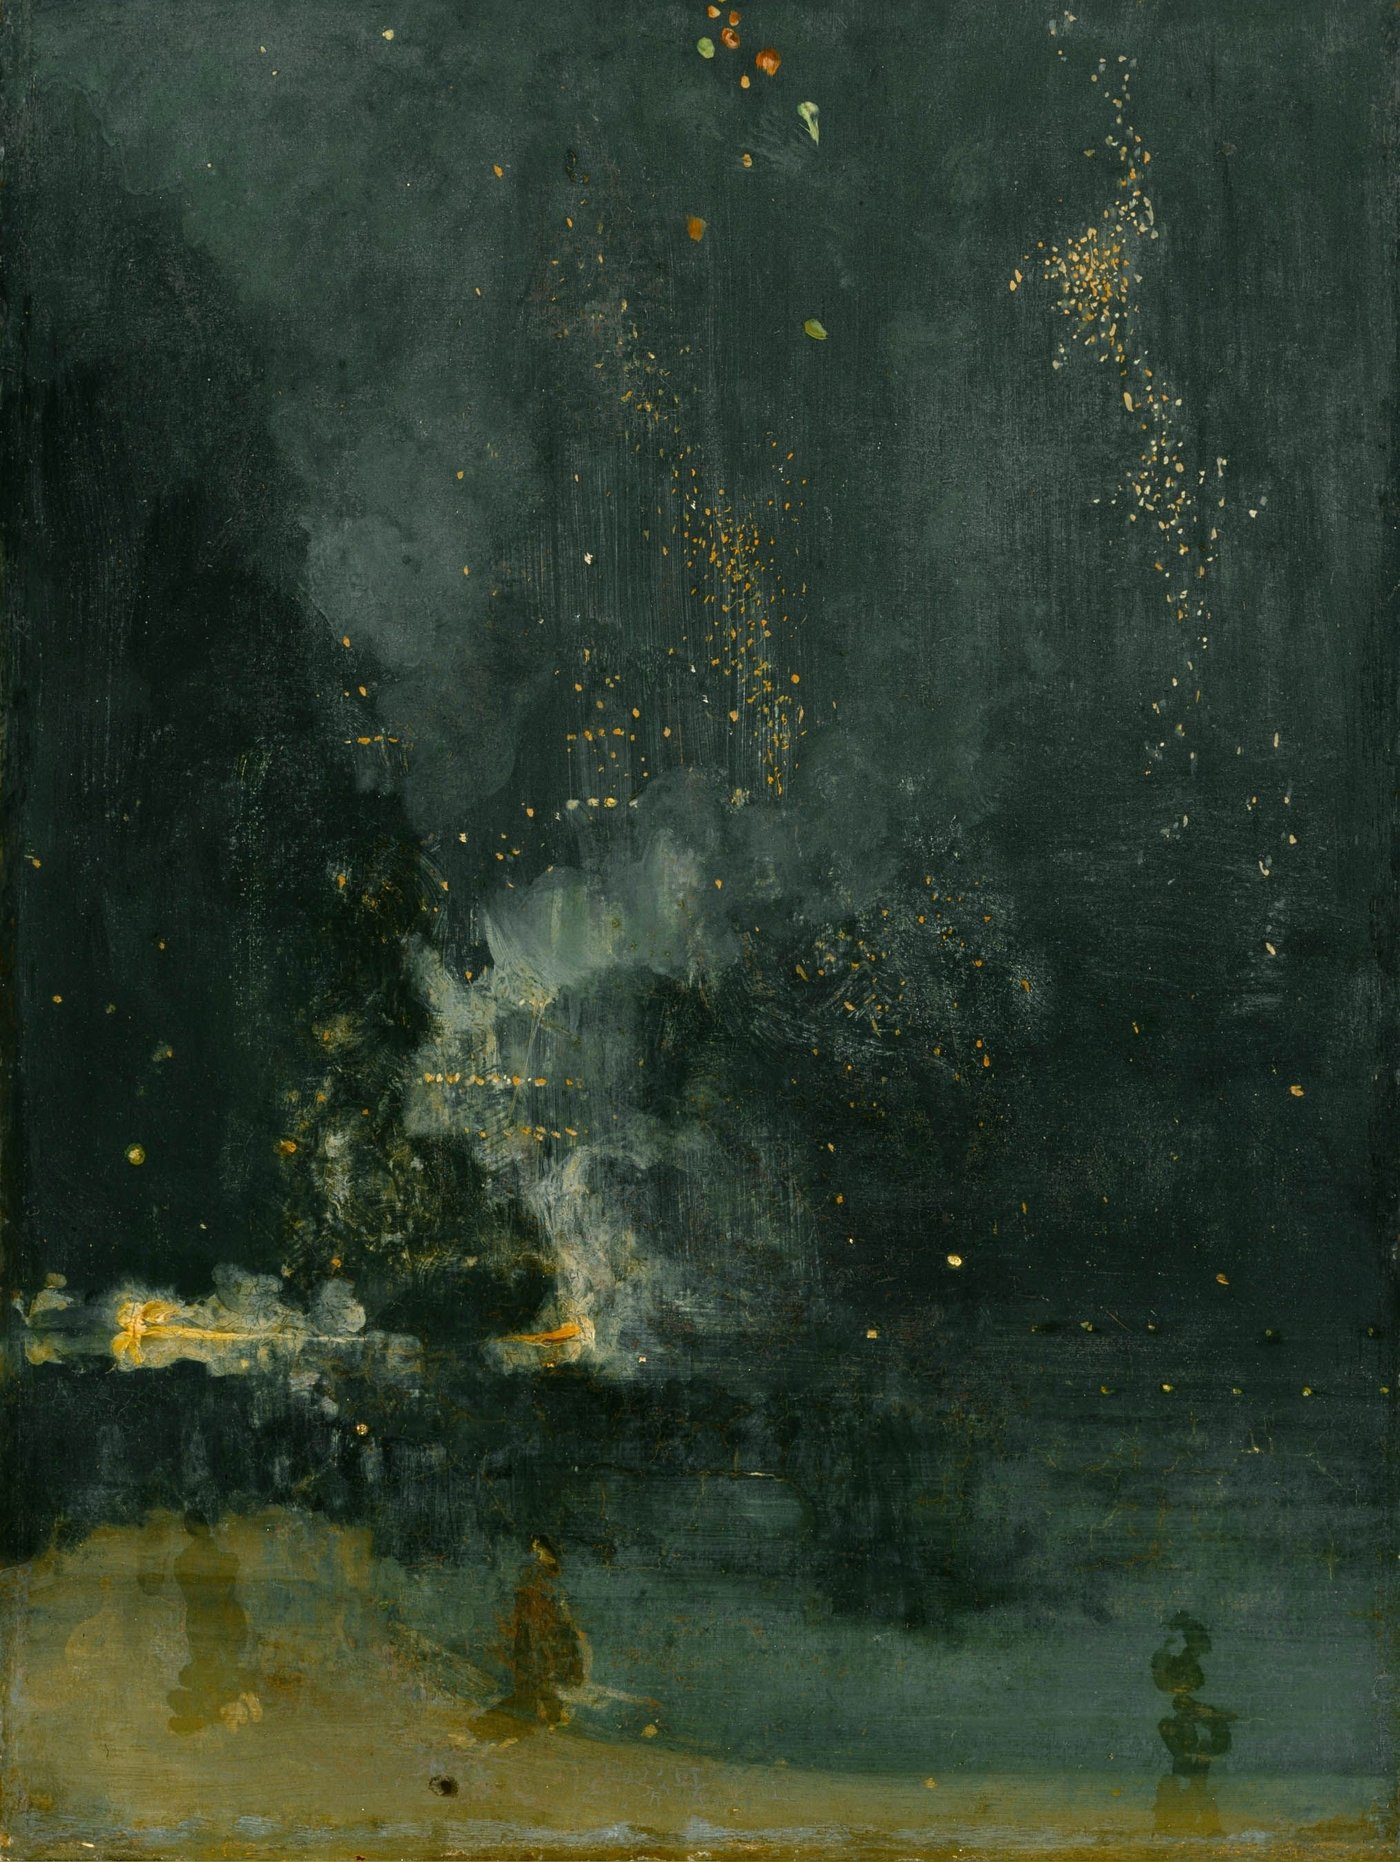 James Abbott McNeill Whistler background